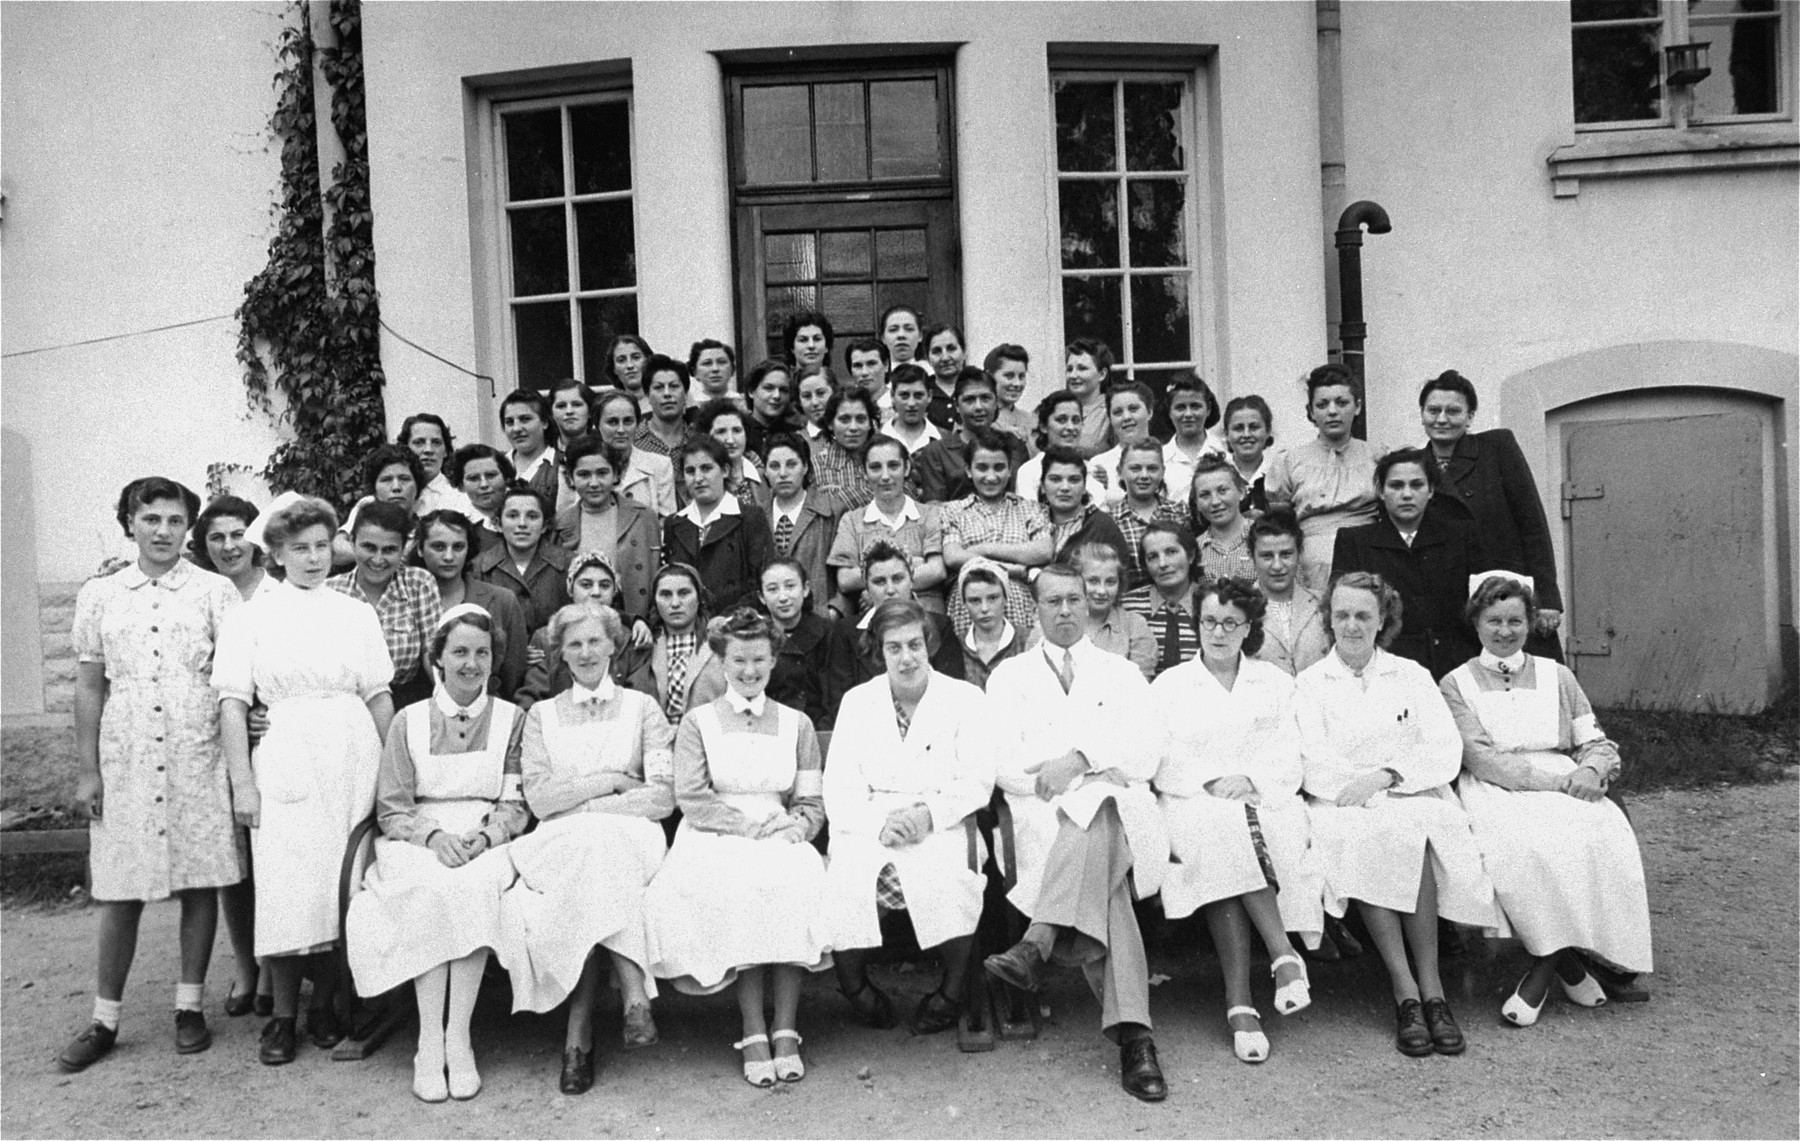 Group portrait of the staff and patients of a hospital and convalescent home for concentration camp survivors in Sweden.